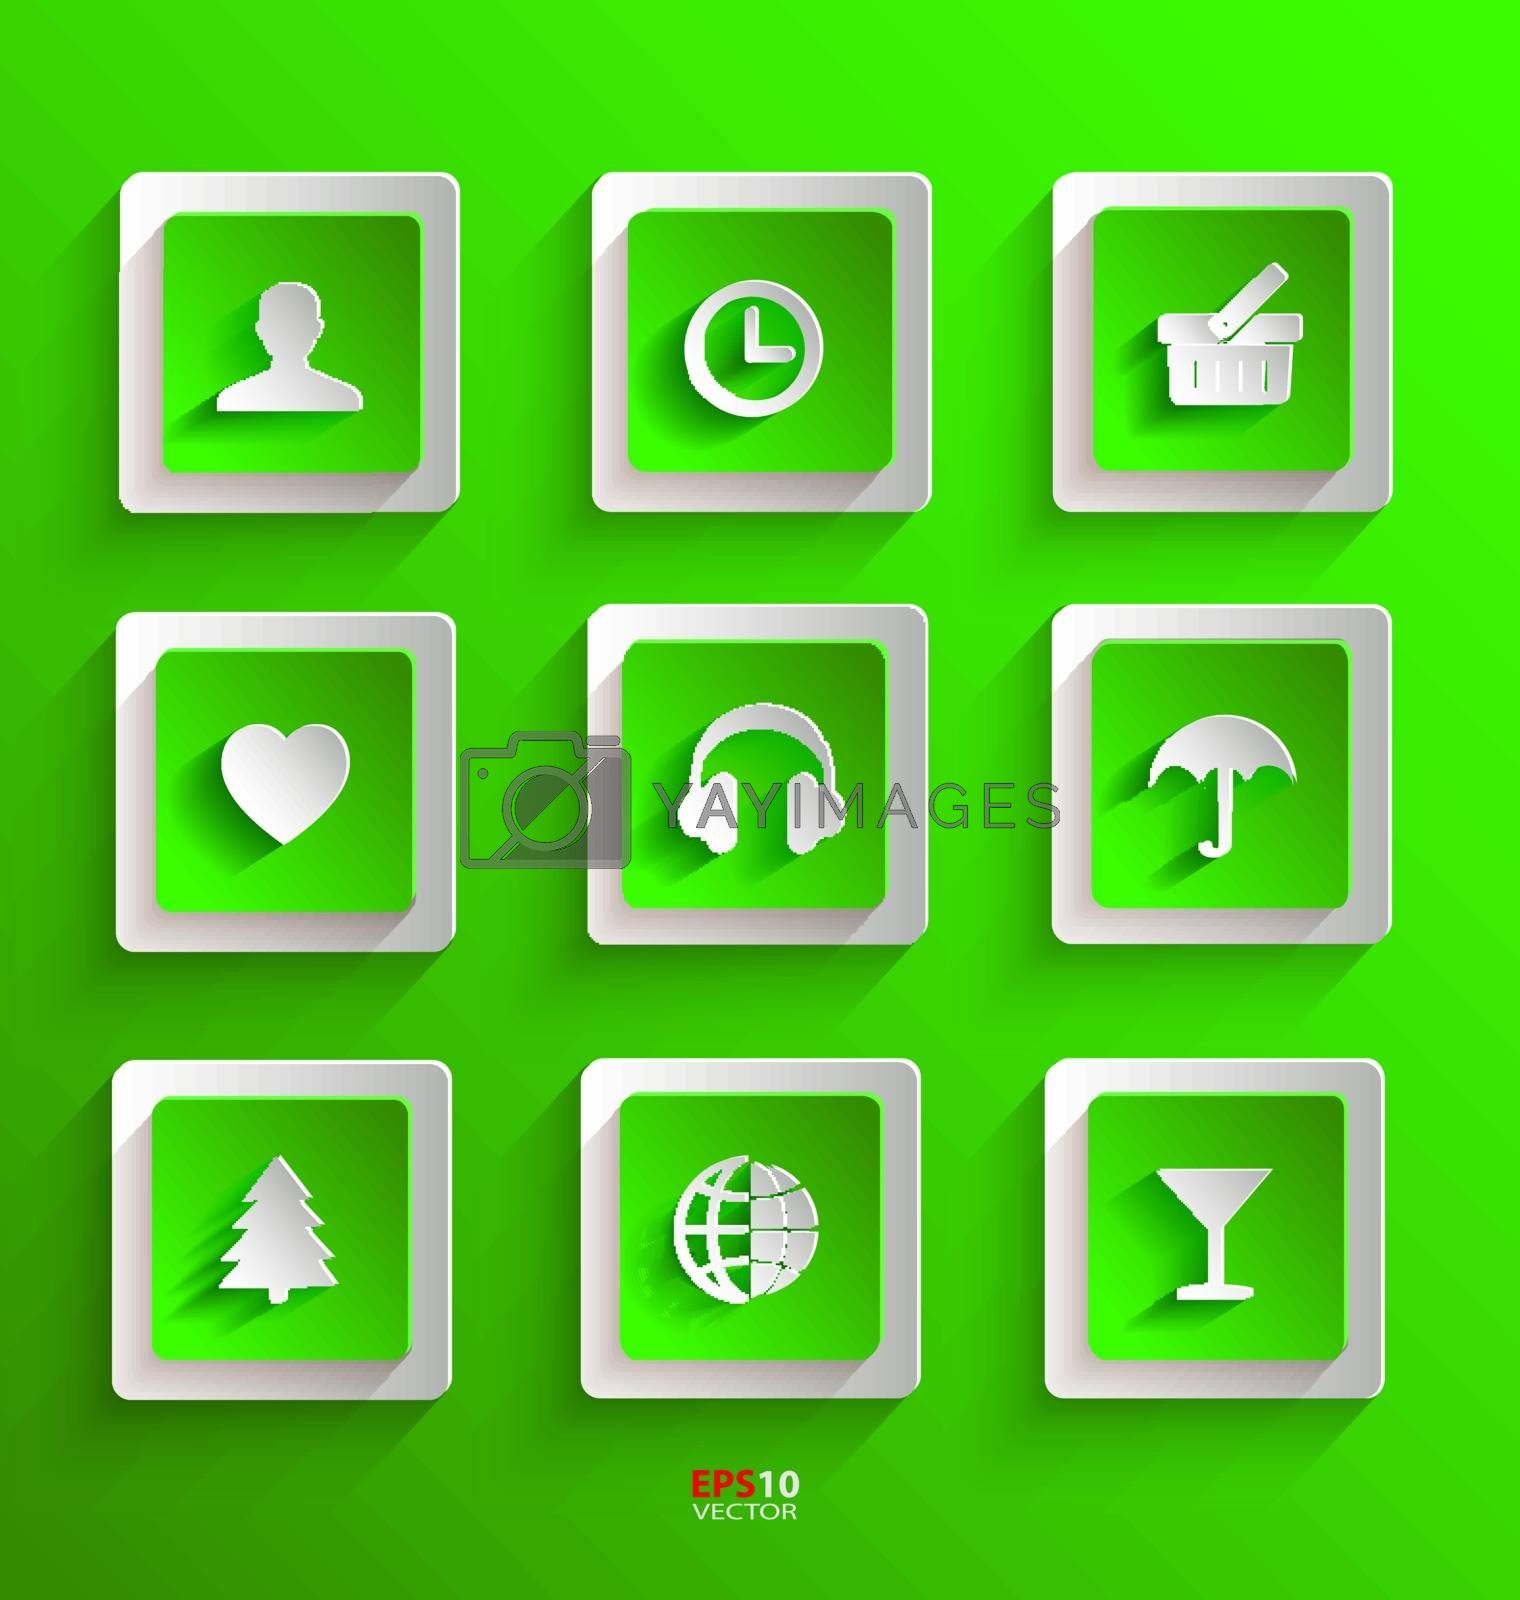 Set of flat paper icons for design needs